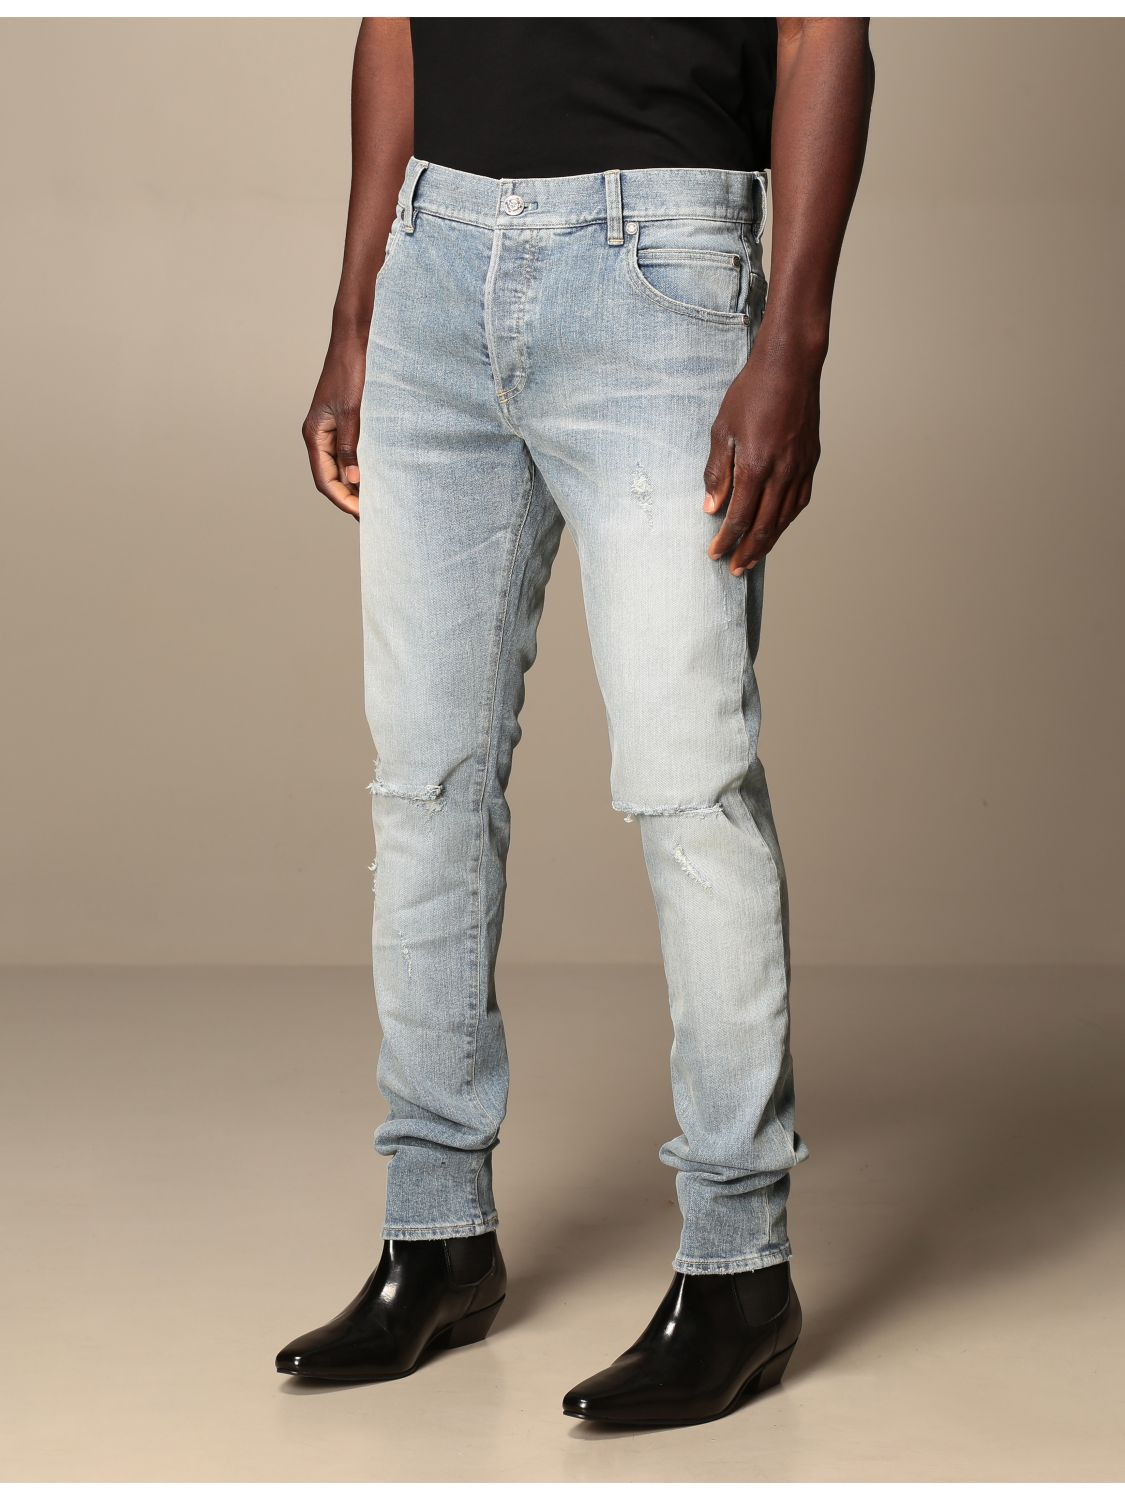 Jeans Balmain: Balmain jeans in stretch denim with logo stone washed 4